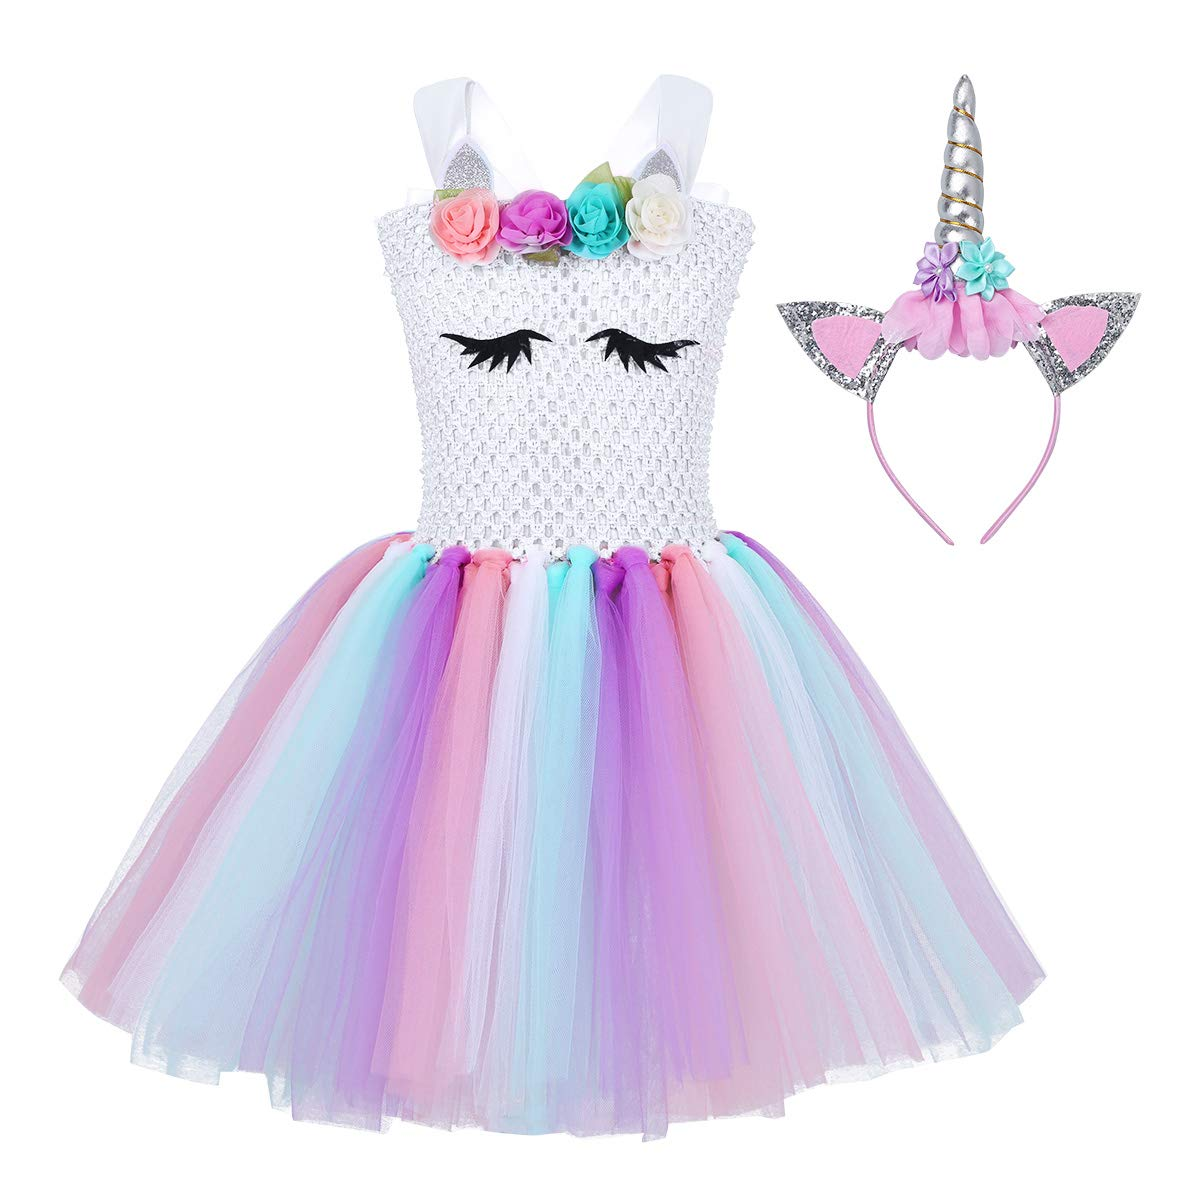 iEFiEL Girls Ballet Tutu Tulle Dress Birthday Party Costume Kids Princess Pageant Wedding Bridesmaid Dress Type A 6-7